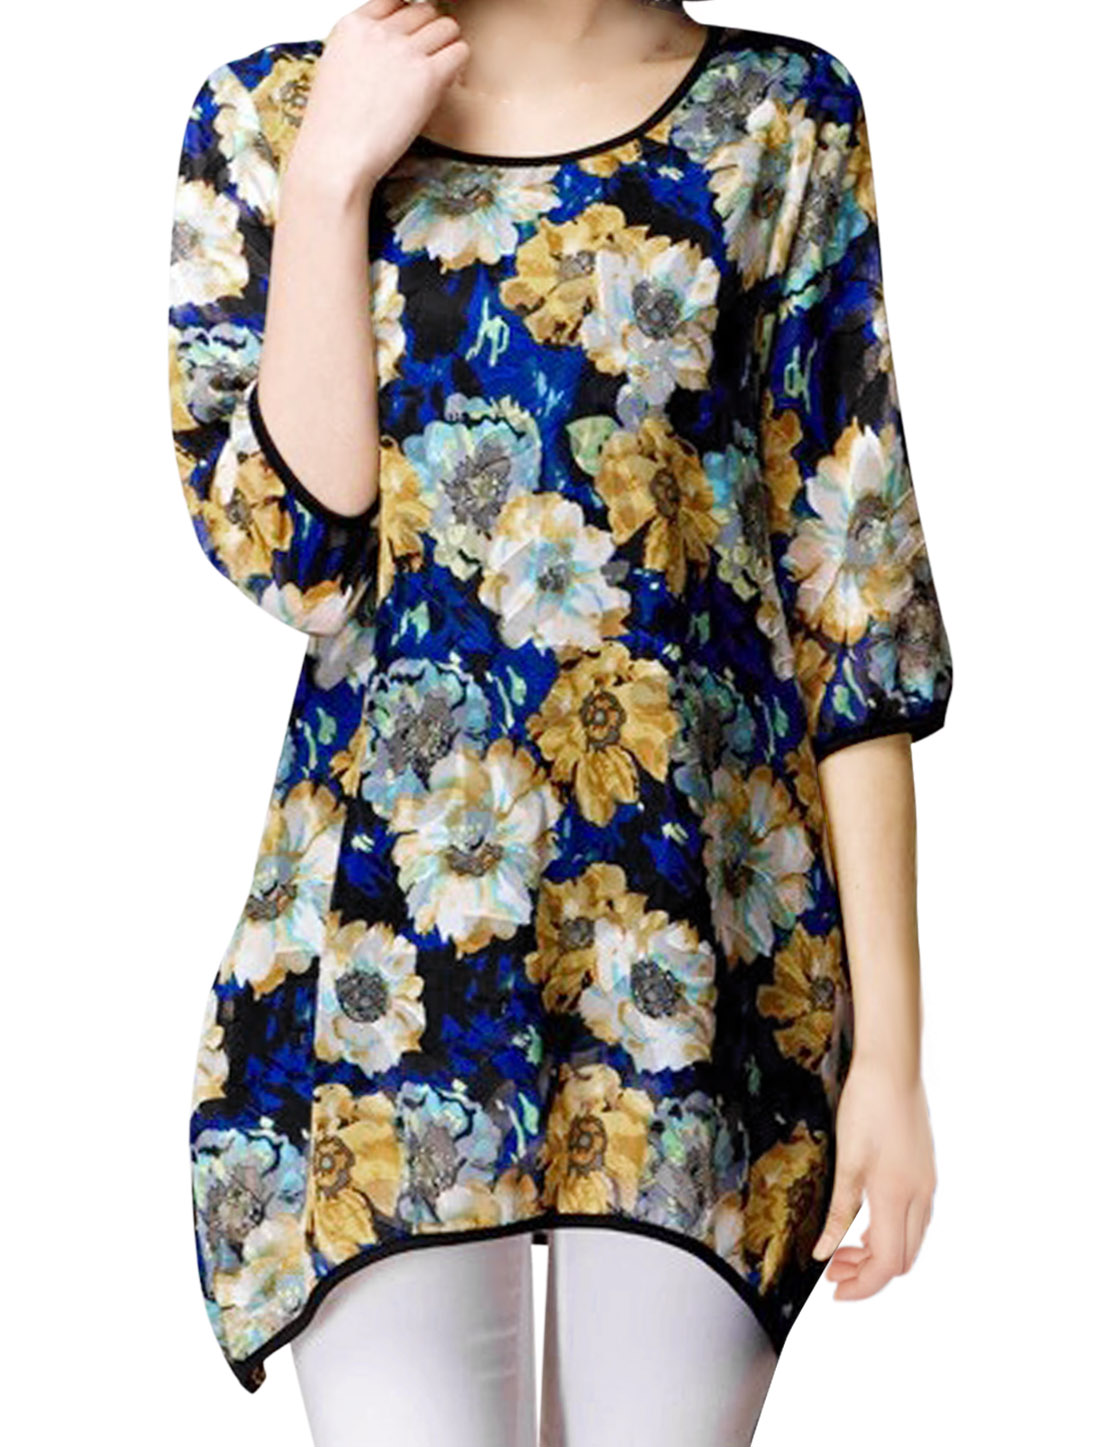 Floral Prints 3/4 Sleeve Slipover Tunic Blouse for Lady w Waist Belt Blue M